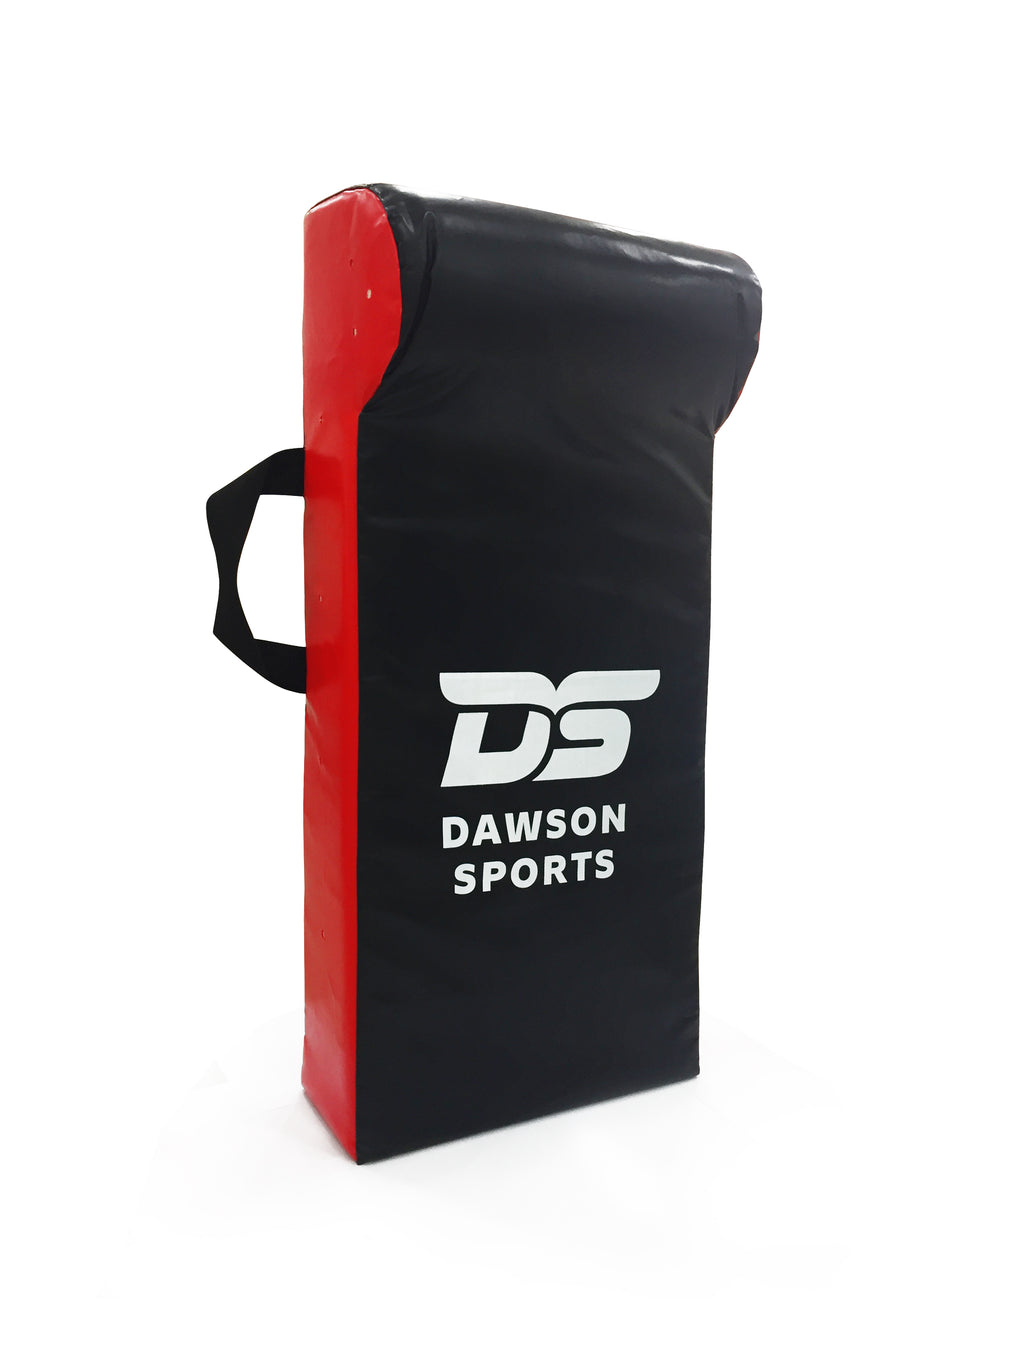 DS - Rugby Hit Shield - Dawson Sports